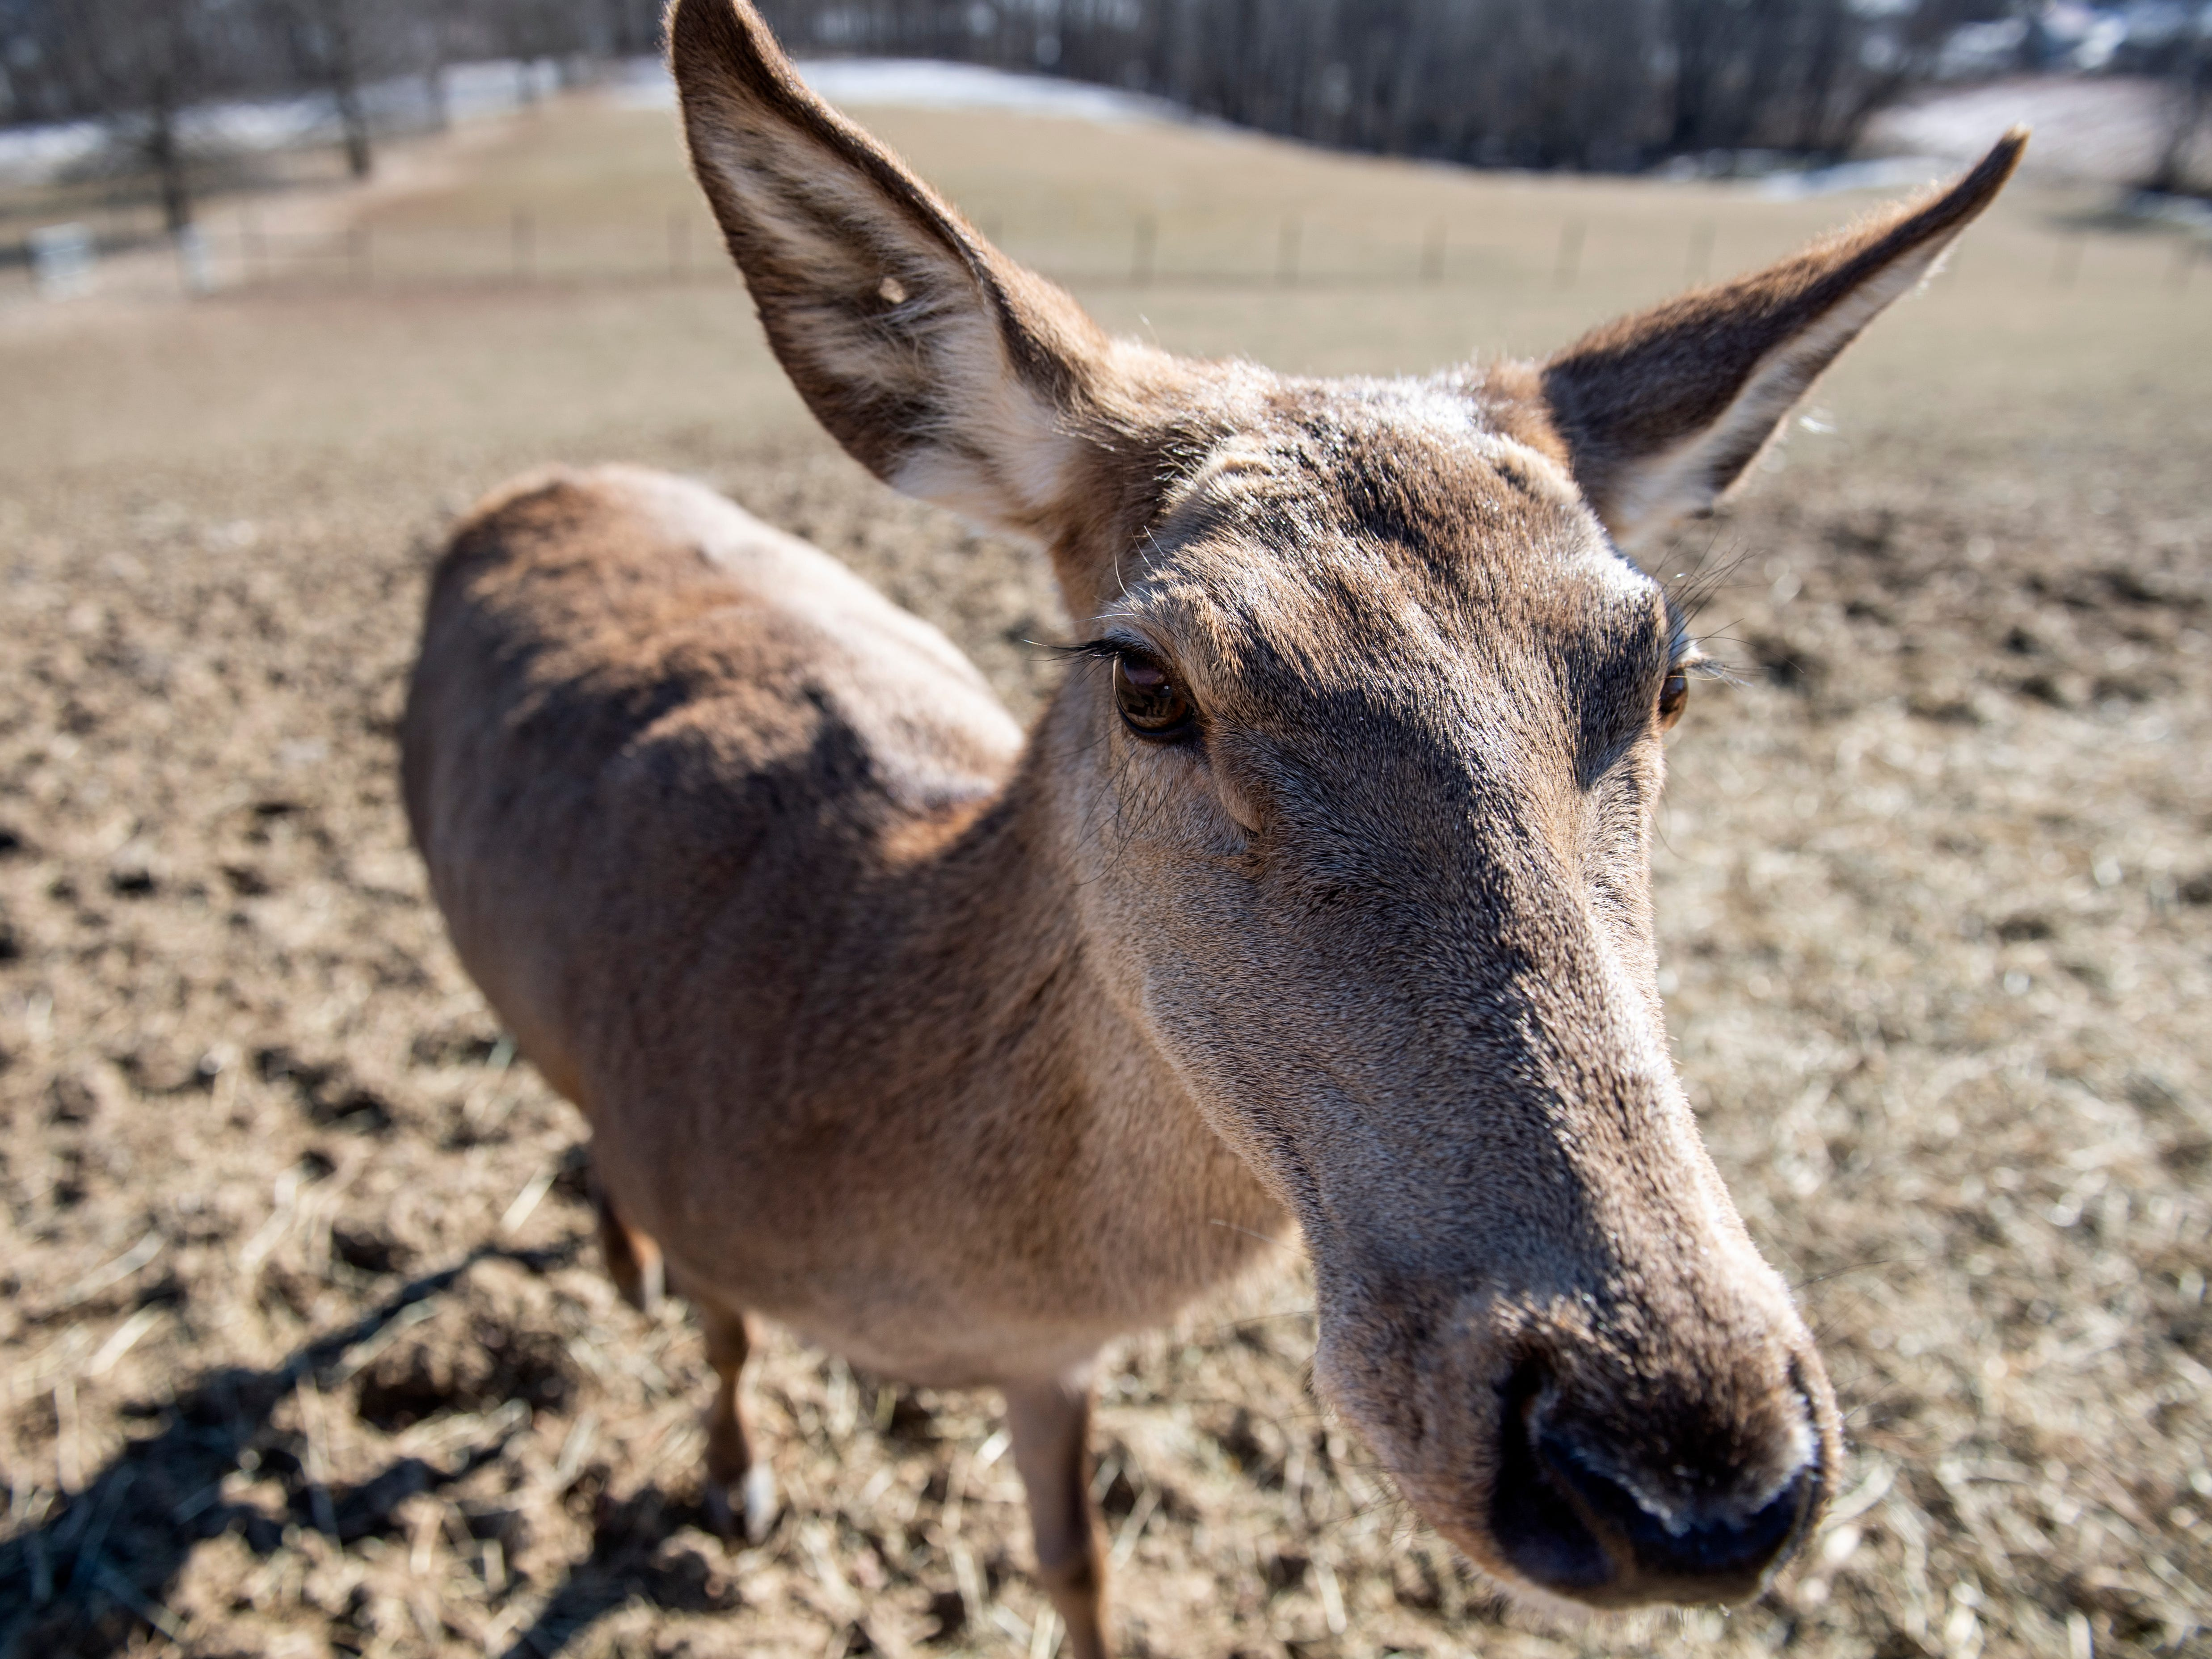 Bambi is practically a pet at Highbourne Farms in Dallastown. She's 14-years old and more than 400 pounds, seen here on Monday, Jan. 21, 2019. Though Highbourne Farms breeds Red deer for meat, Bambi is safe from the shelf. It's one of the few places in the York-area where venison is readily available for purchase year-round.